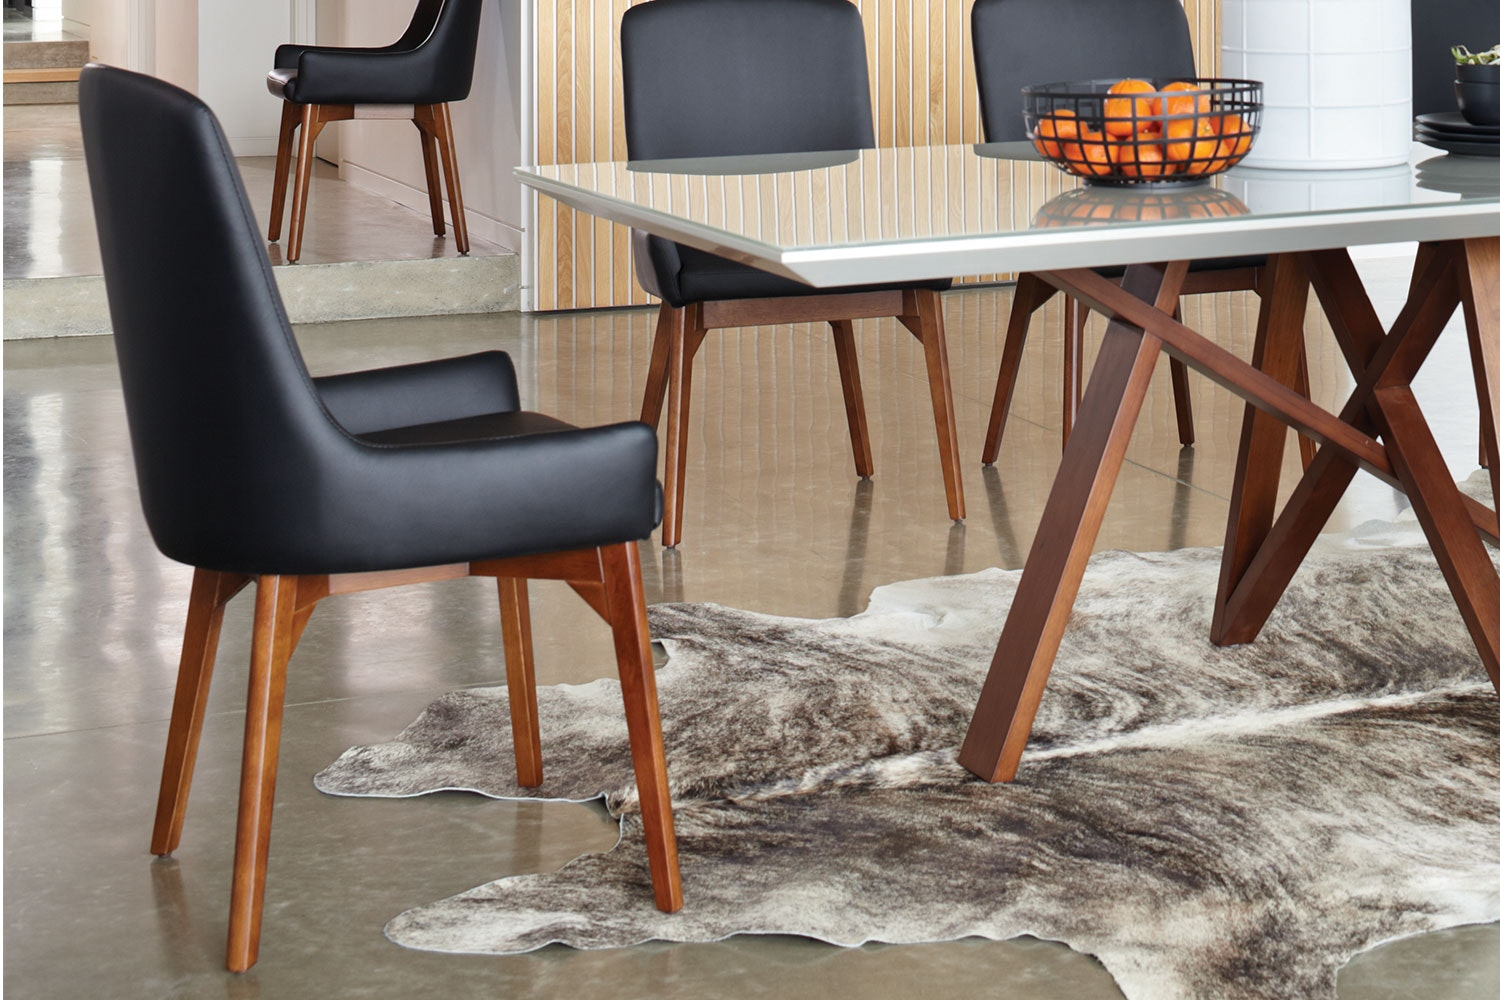 Monte Carlo Dining Chair by Insato Furniture